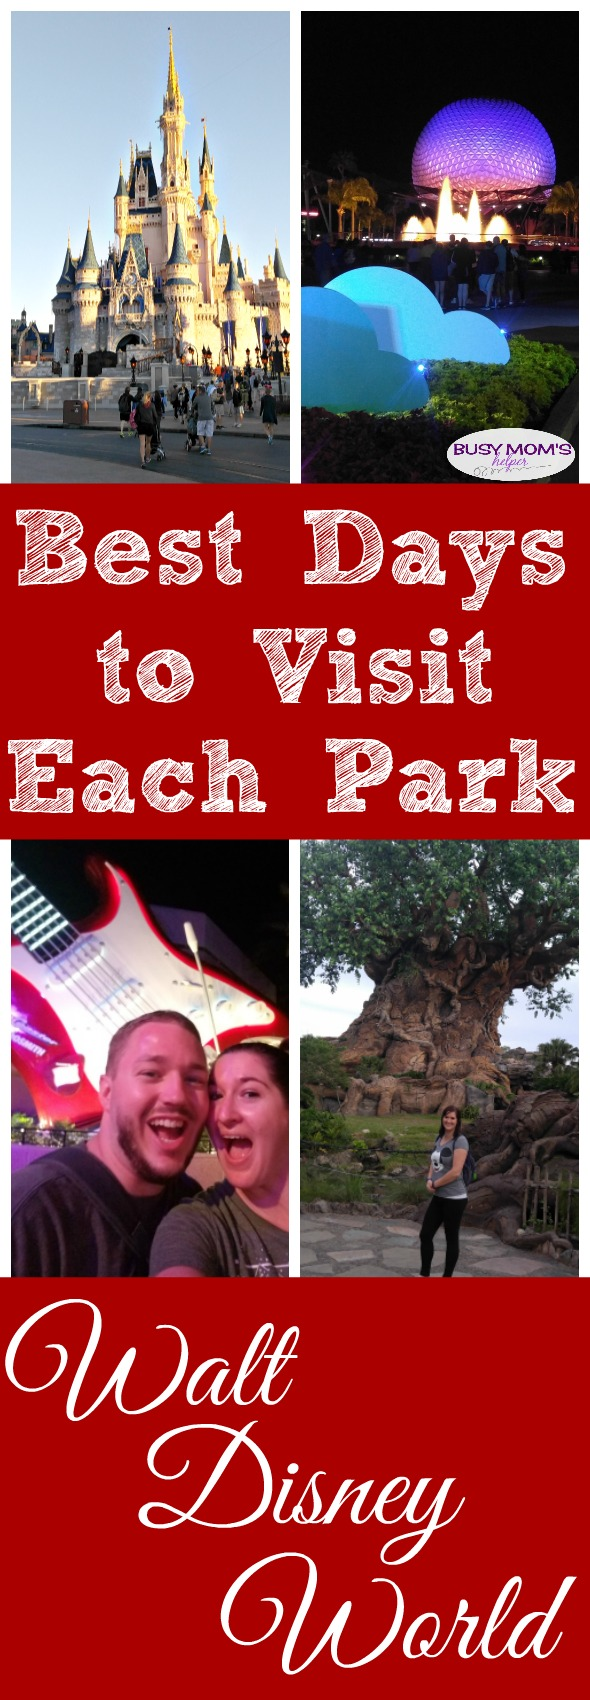 Best Day to Visit Each Park at Walt Disney World #waltdisneyworld #familytravel #travel #wdw #disneyparks